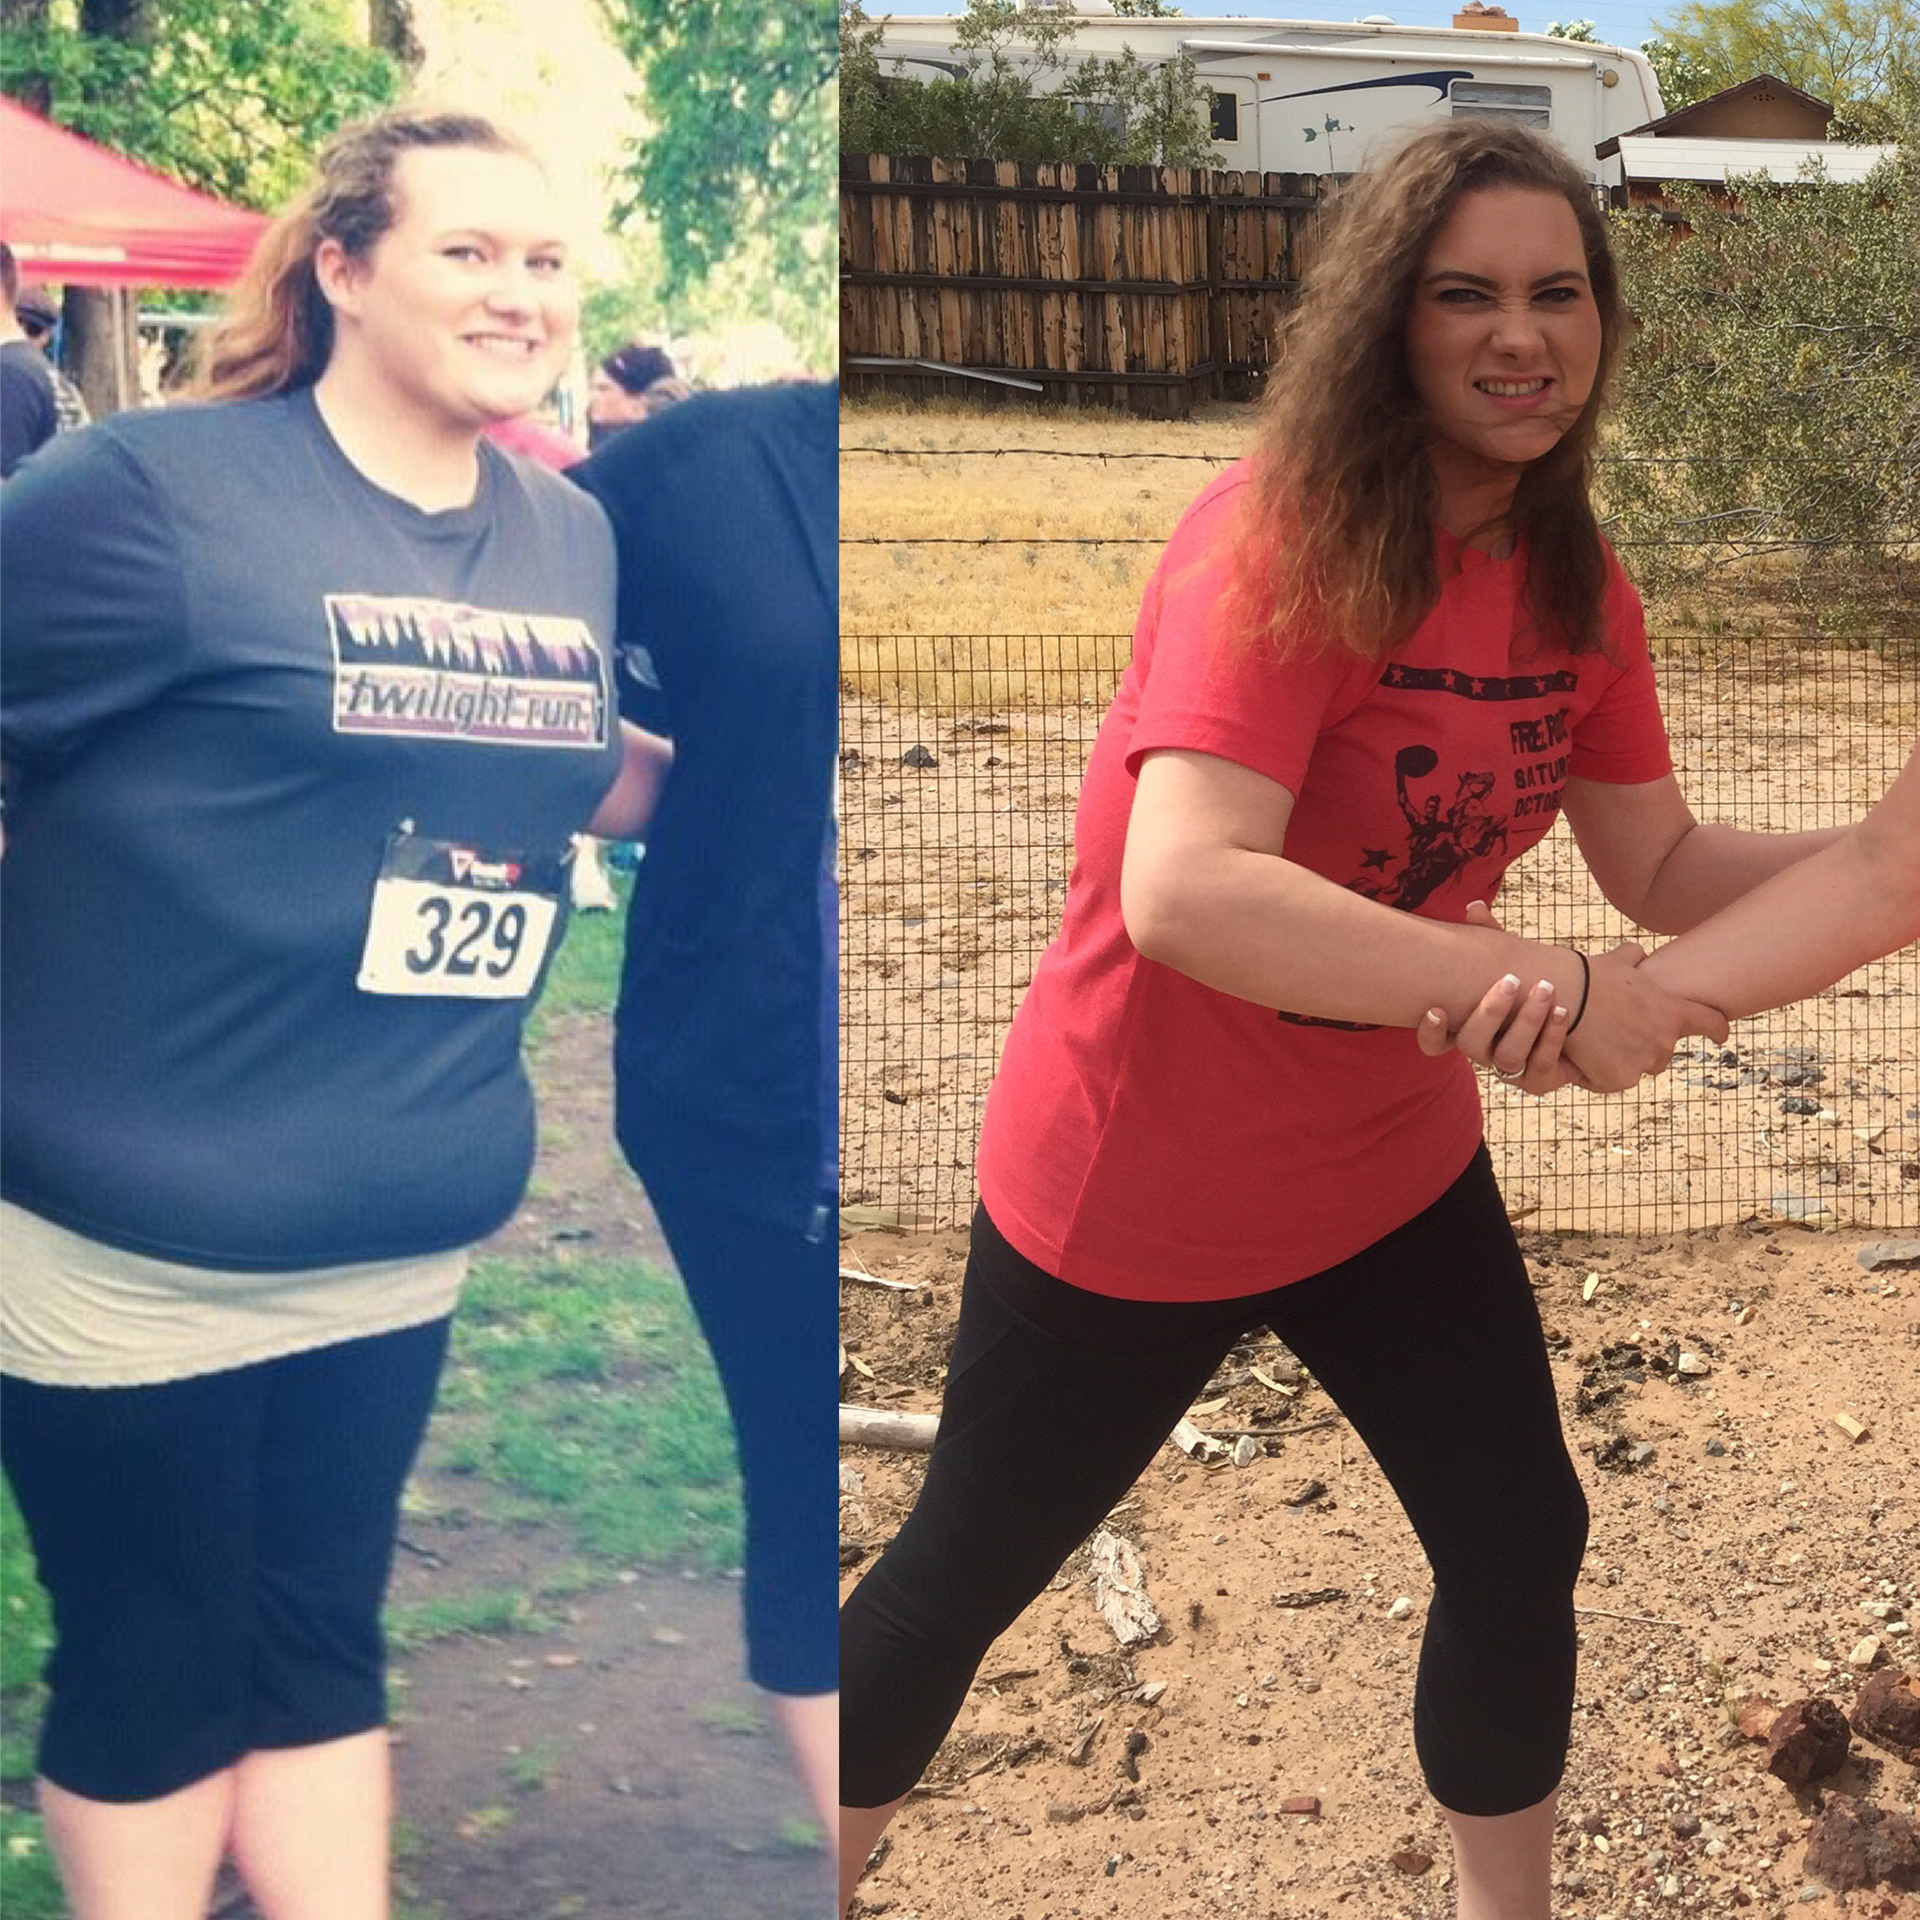 'I lost 100 pounds on a fad no-carb diet'